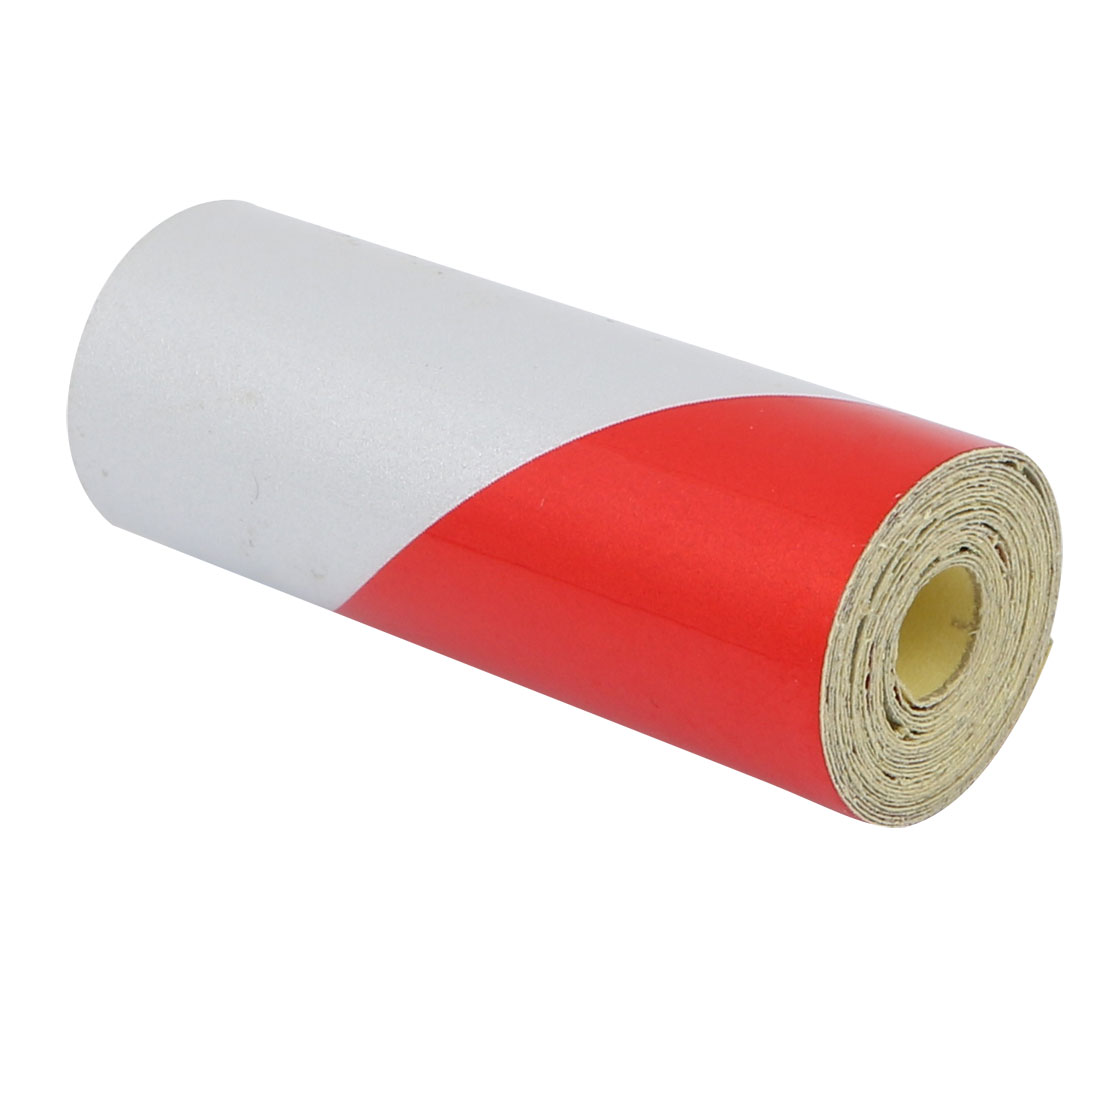 5cm Wide 1 Meter Long Single Sided Adhesive Reflective Warning Tape Red White